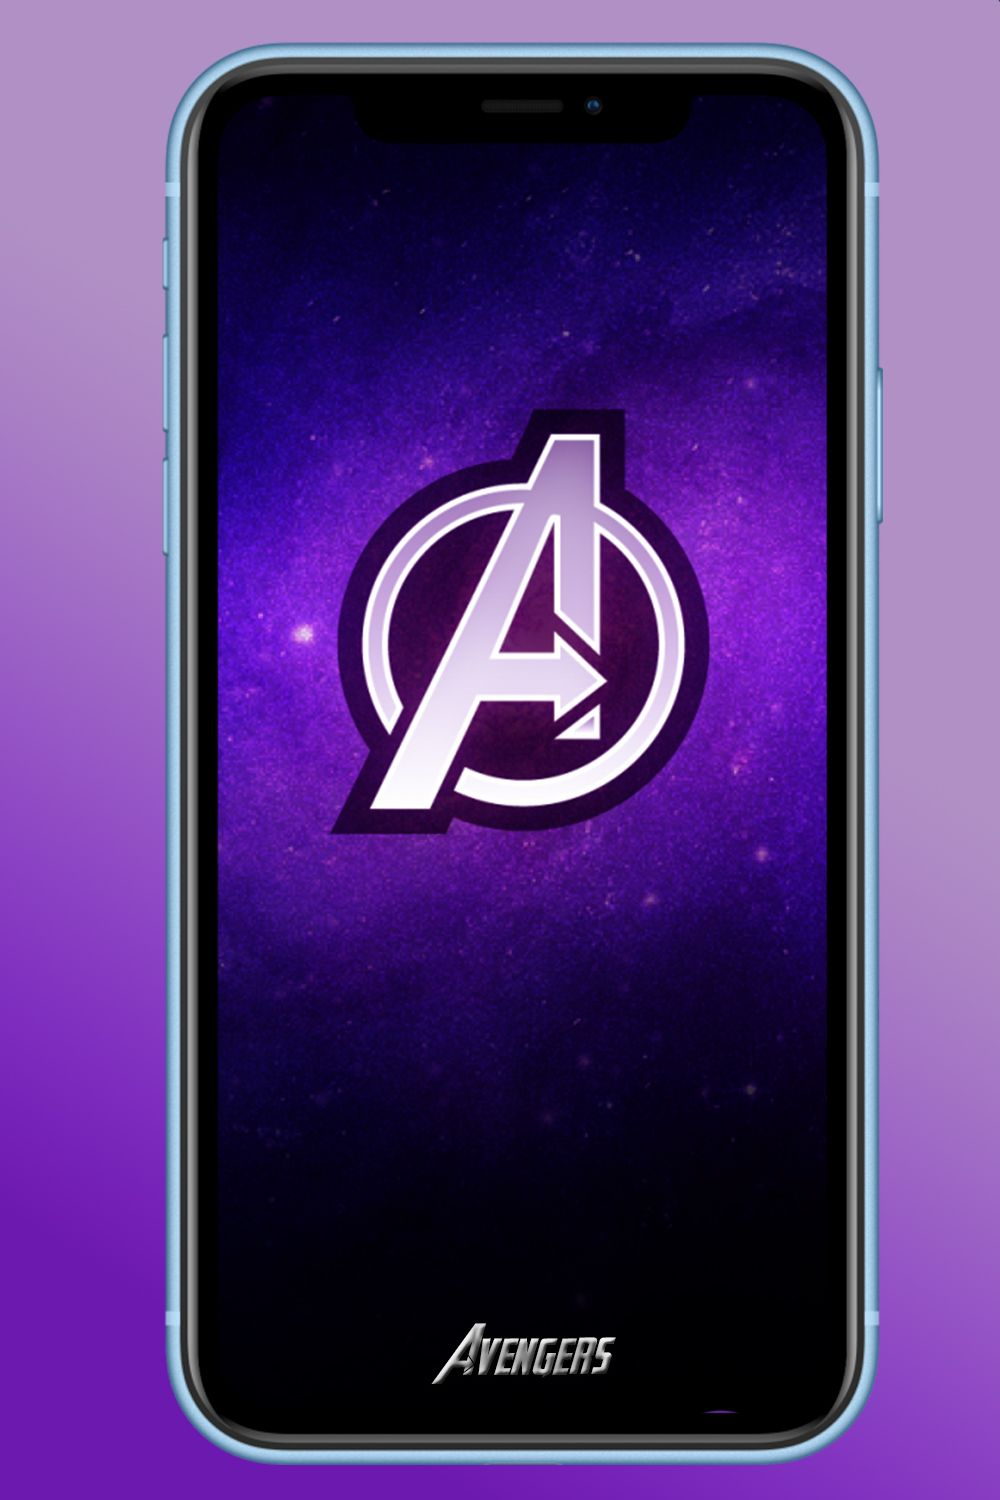 Iphone X Wallpaper With Notch Tecnologist New Wallpaper Iphone Superhero Wallpaper Iphone Live Wallpaper Iphone